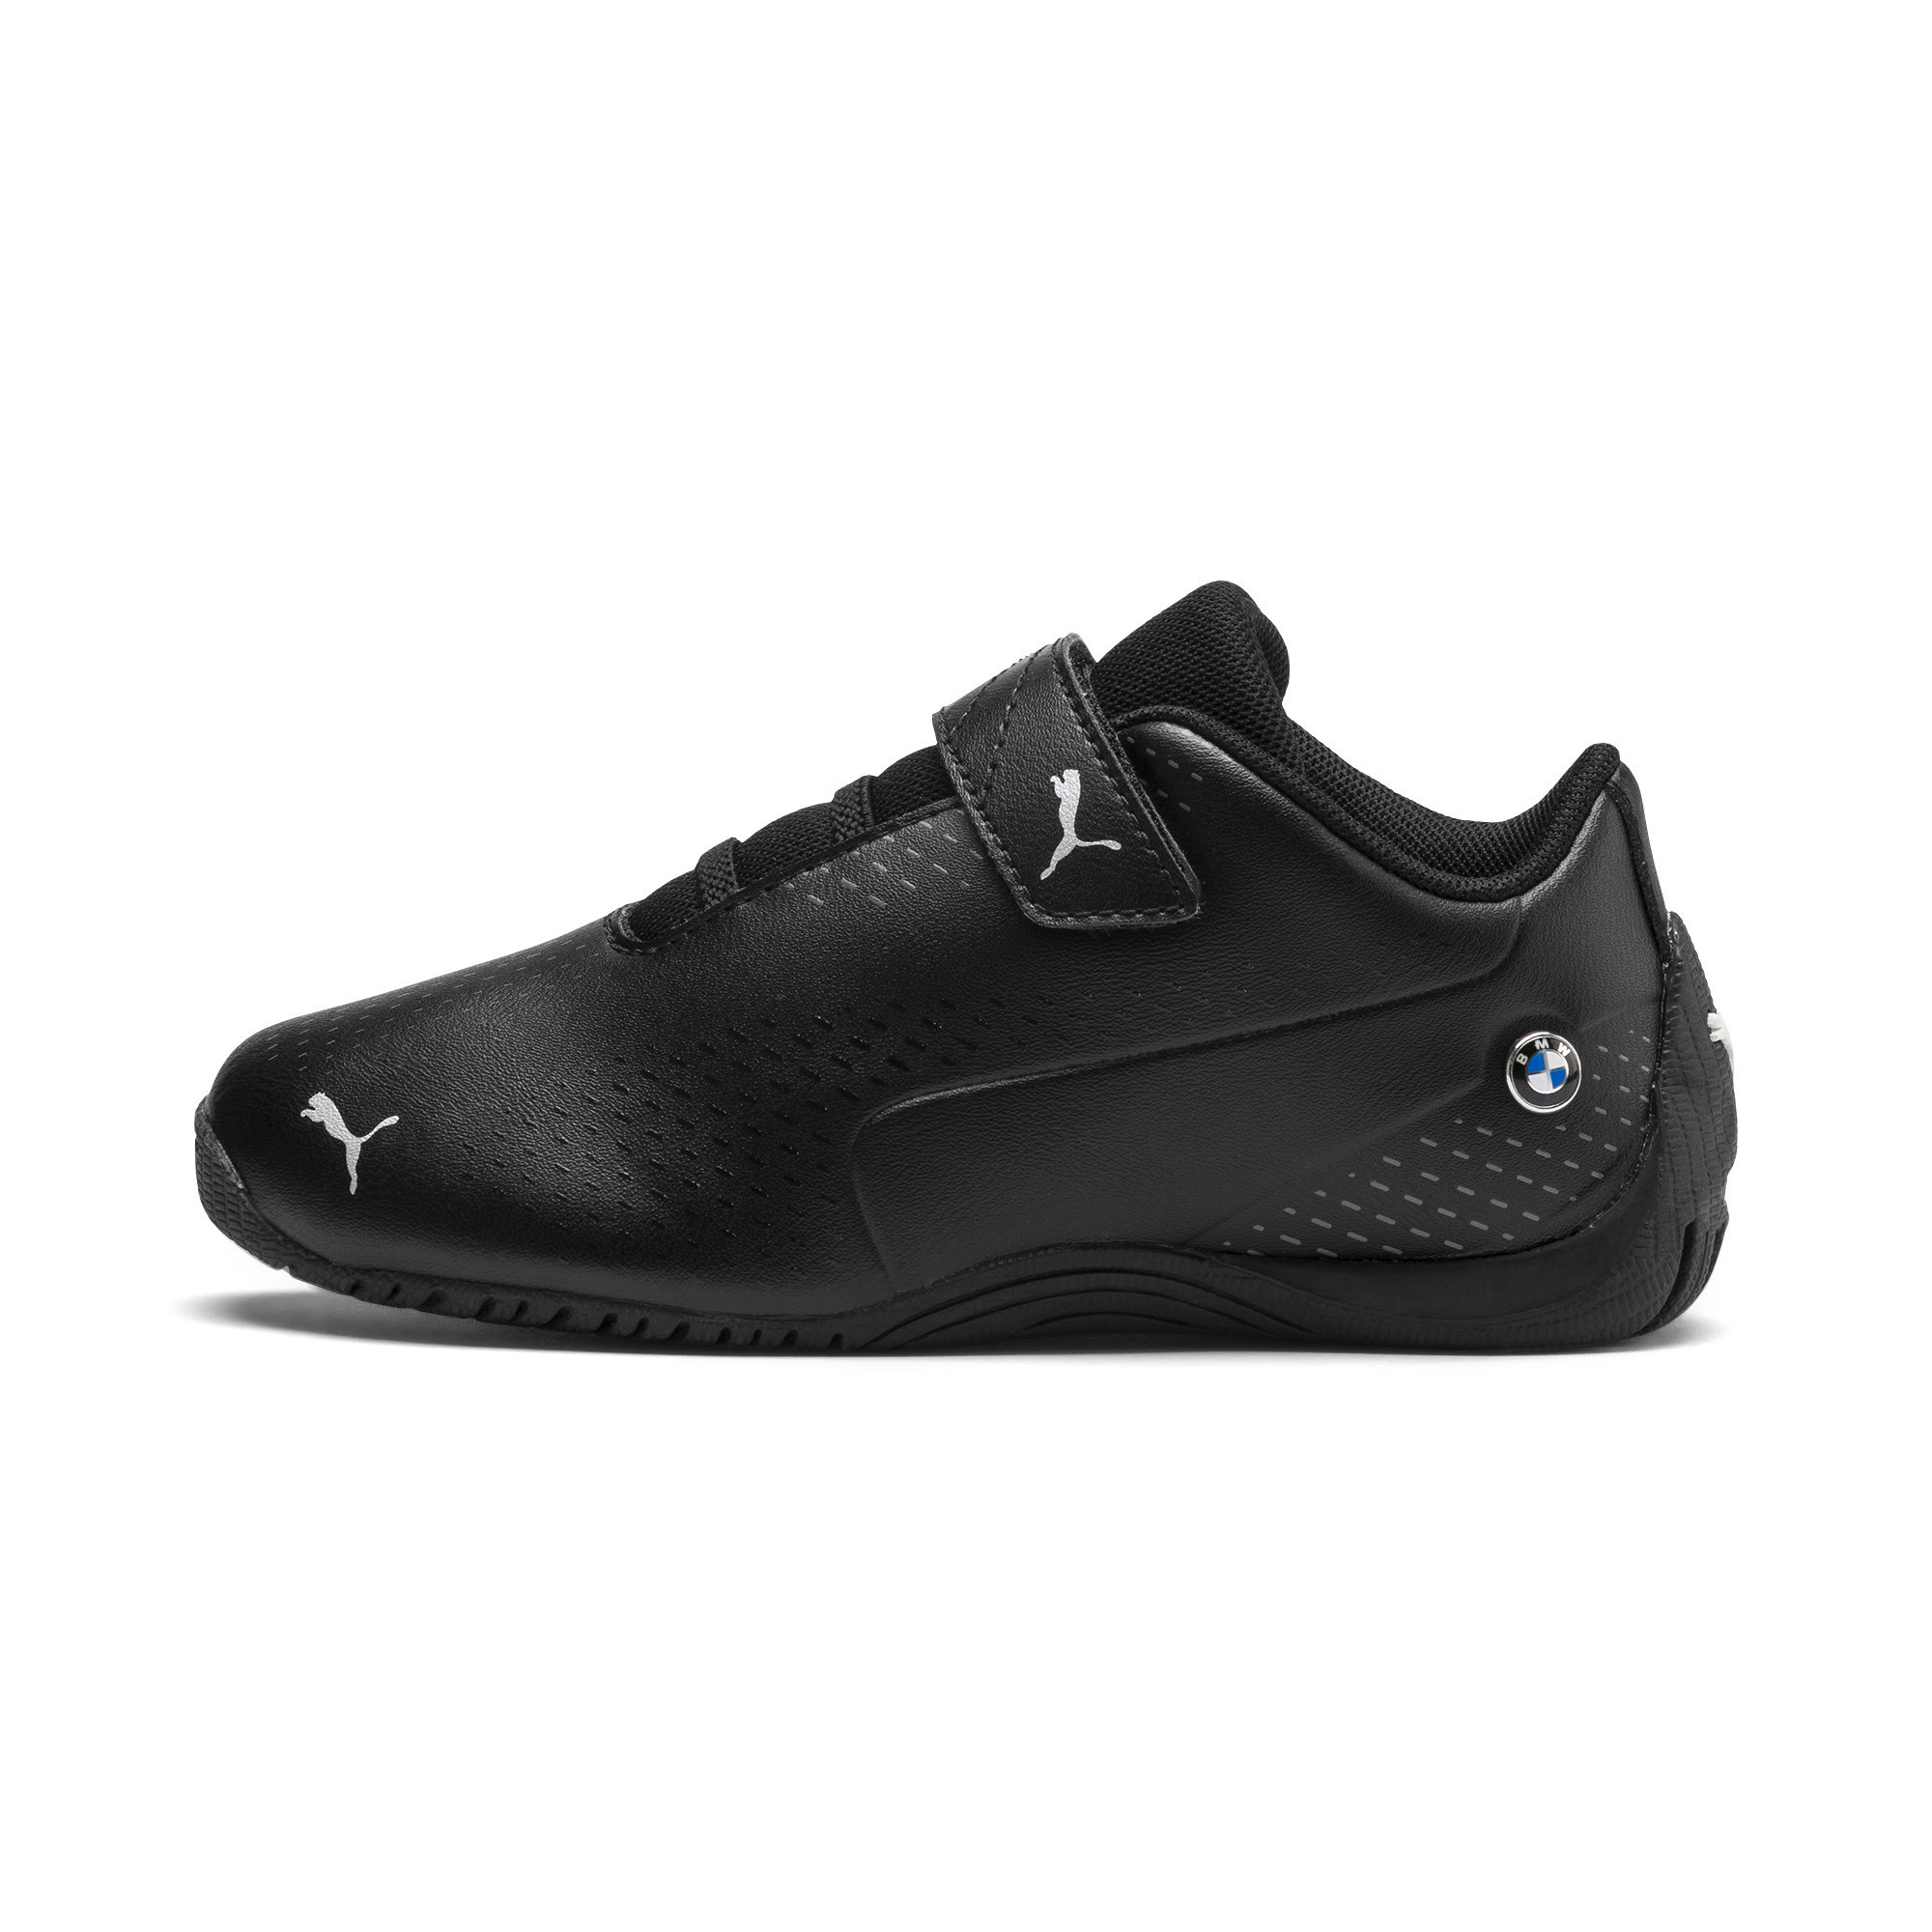 PUMA-BMW-M-Motorsport-Drift-Cat-5-Ultra-II-Little-Kids-039-Shoes-Kids-Shoe-Auto thumbnail 10